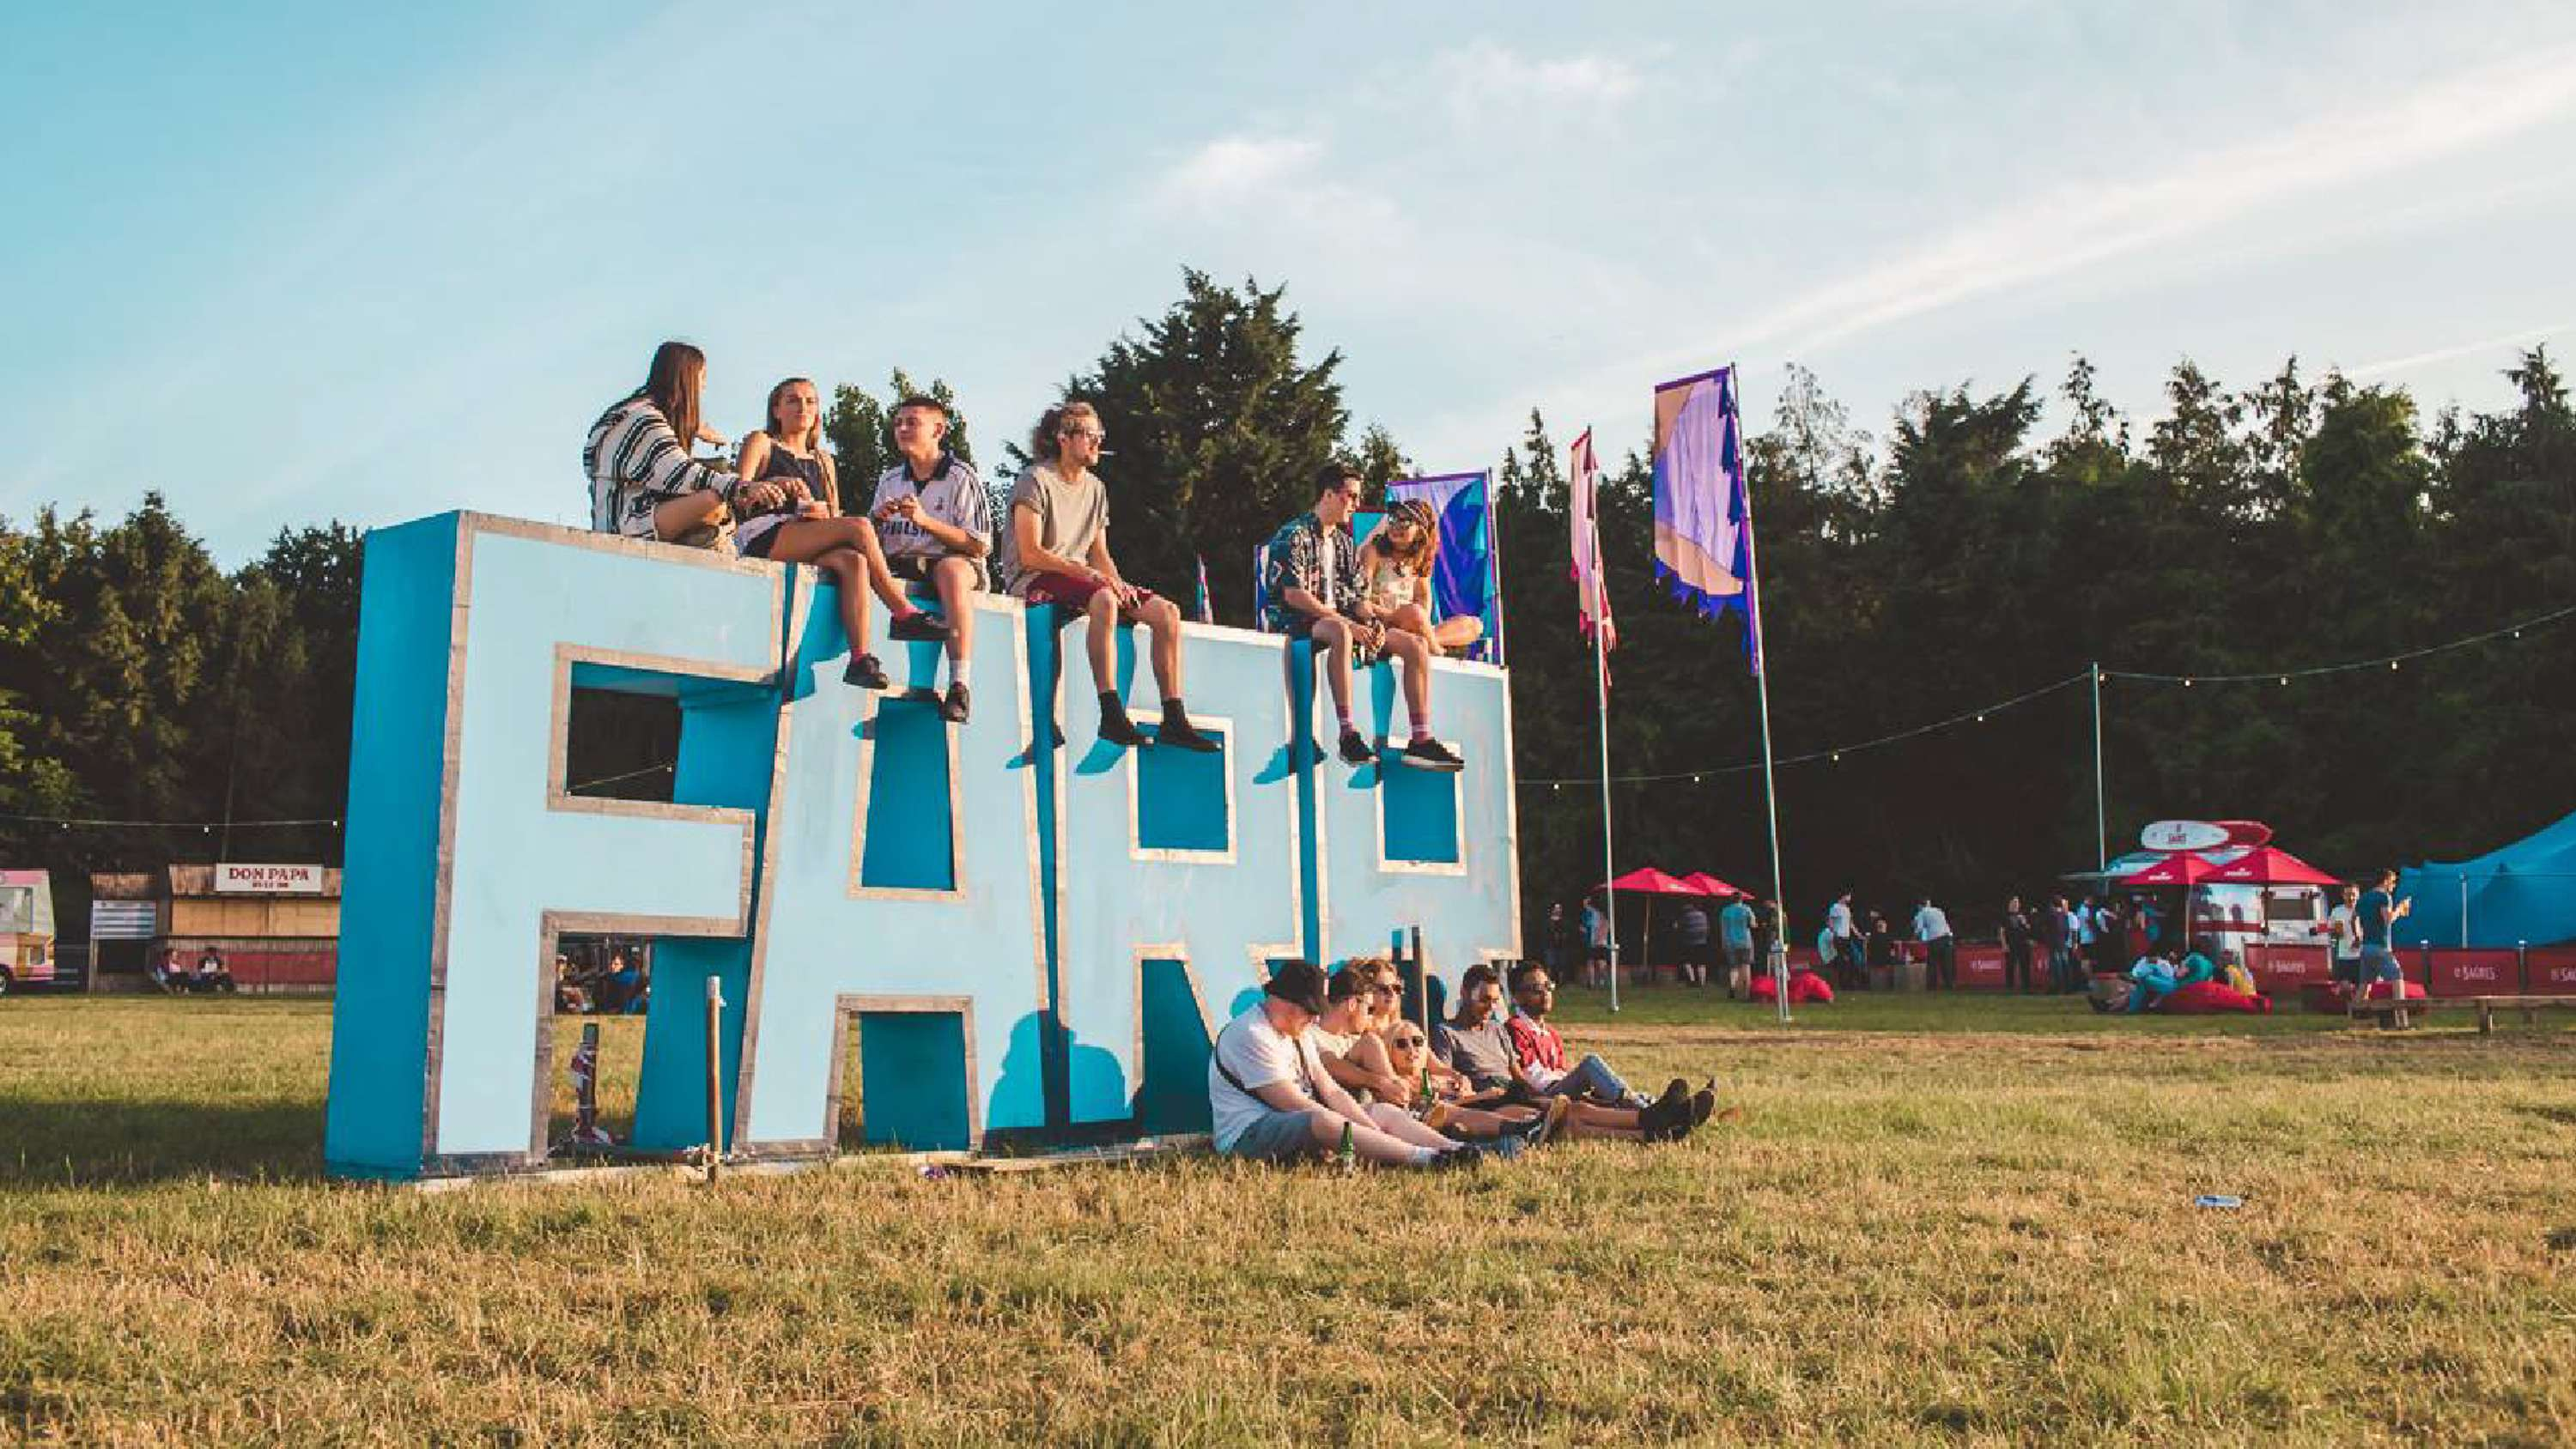 Design direction for UK electronic festival in the woods, Farr | The